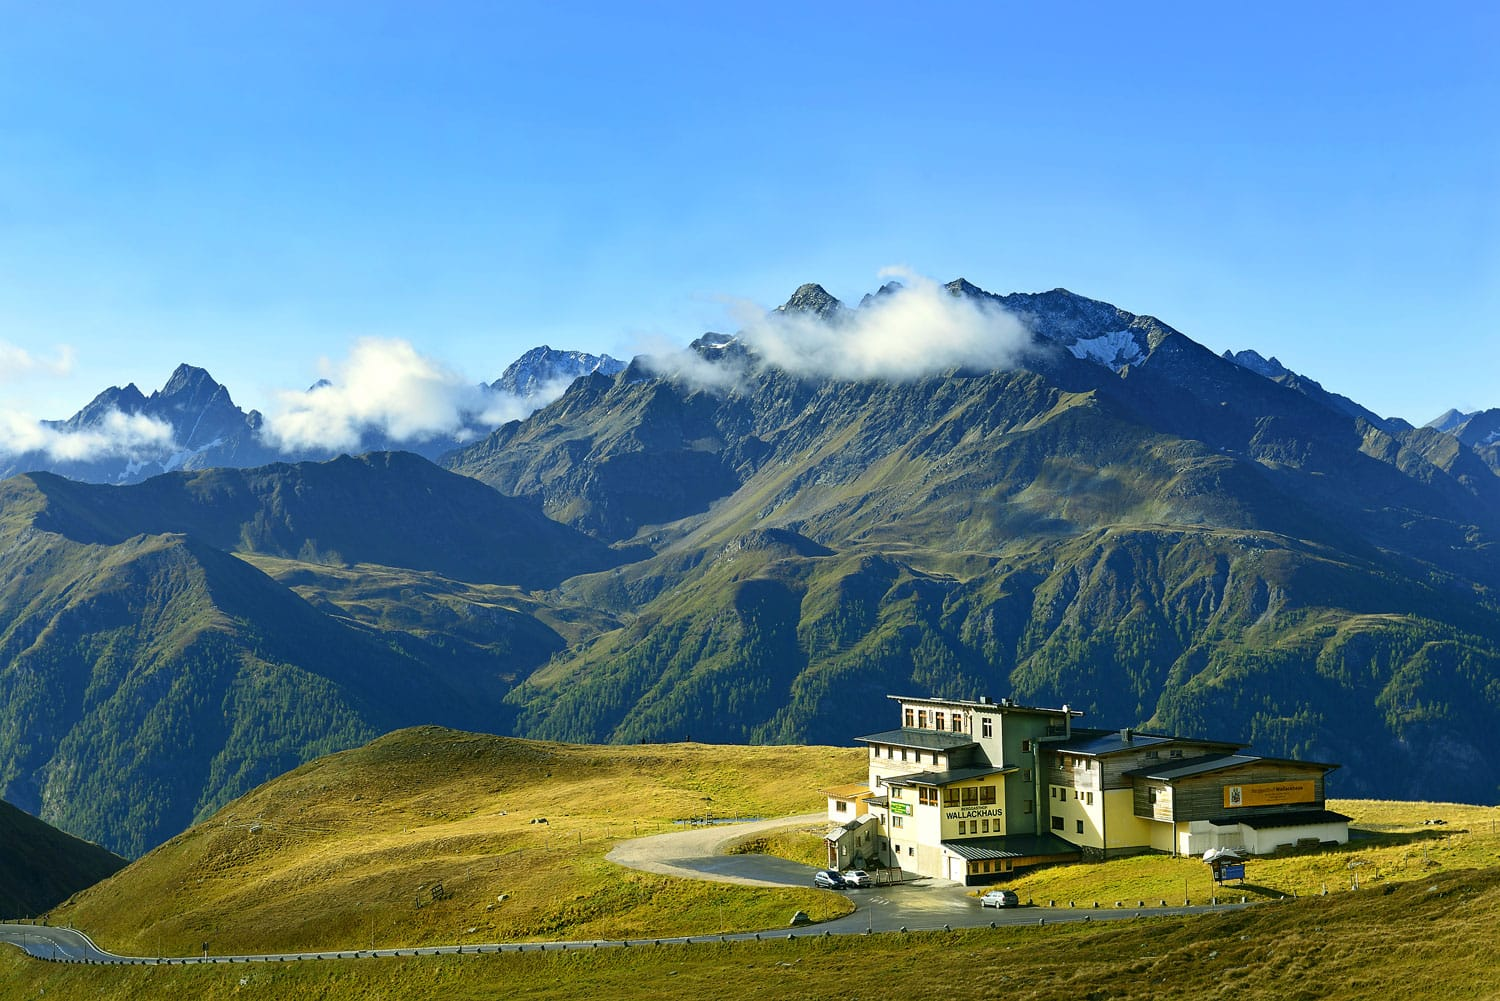 The Grossglockner high alpine road is the highest mountain road in Austria